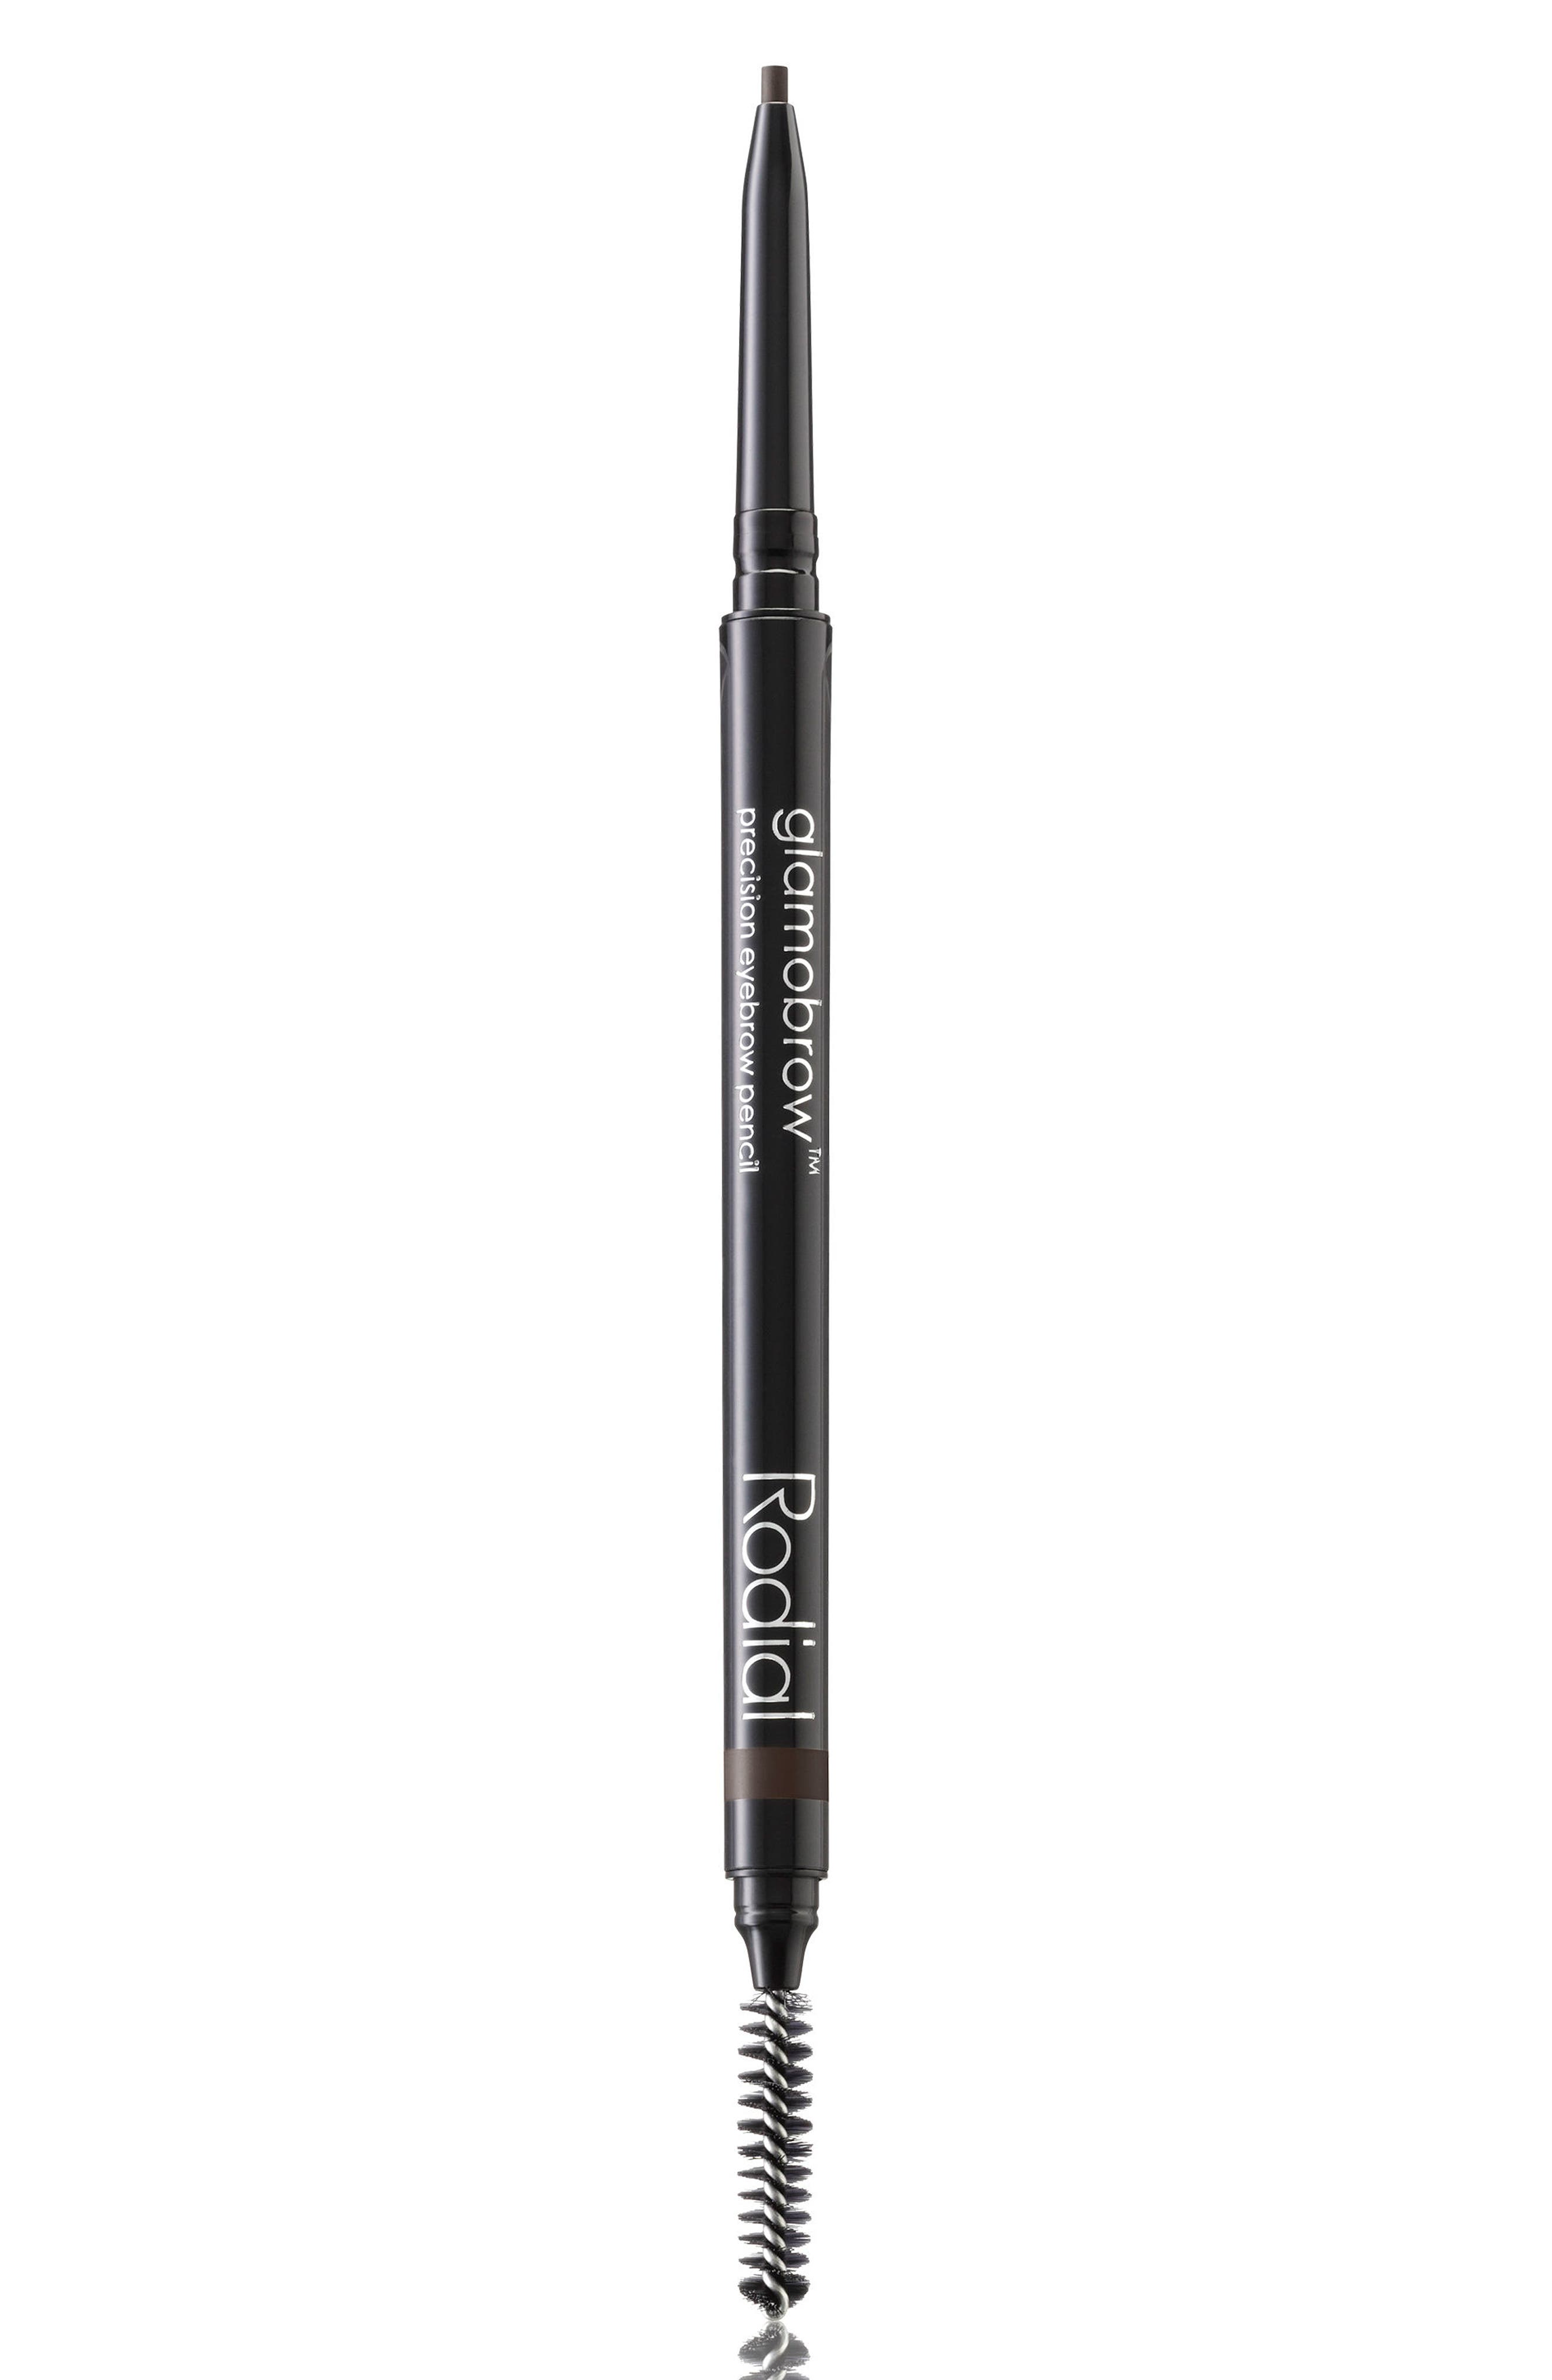 SPACE.NK.apothecary Rodial Glamobrow,                         Main,                         color, 200